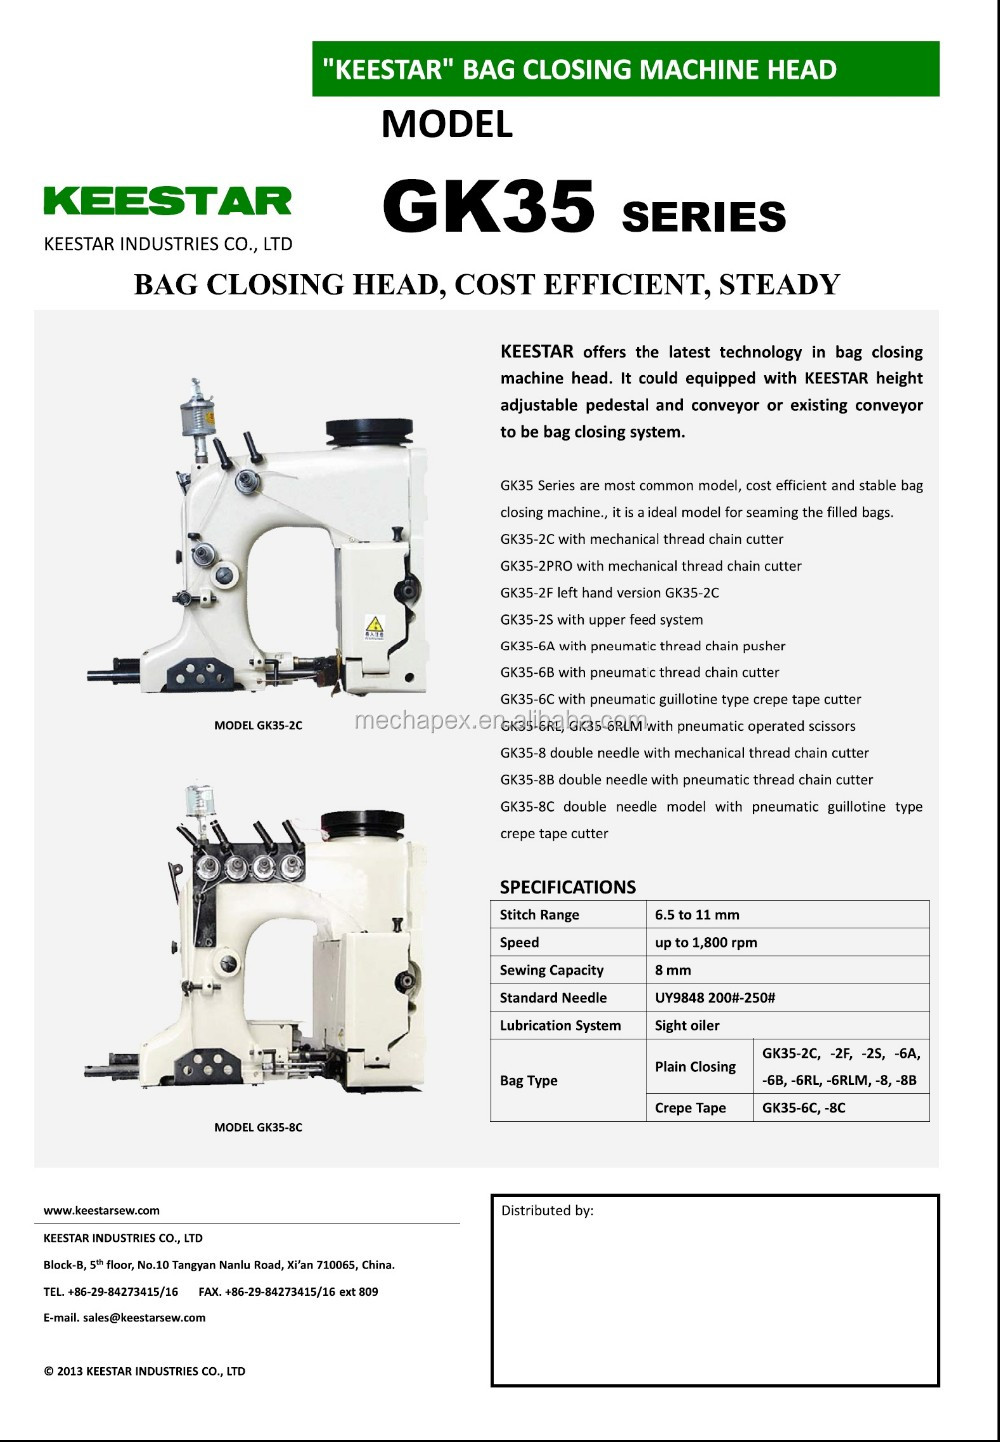 keestar GK35-6B Unionspecial automatic bag closer sewing machine